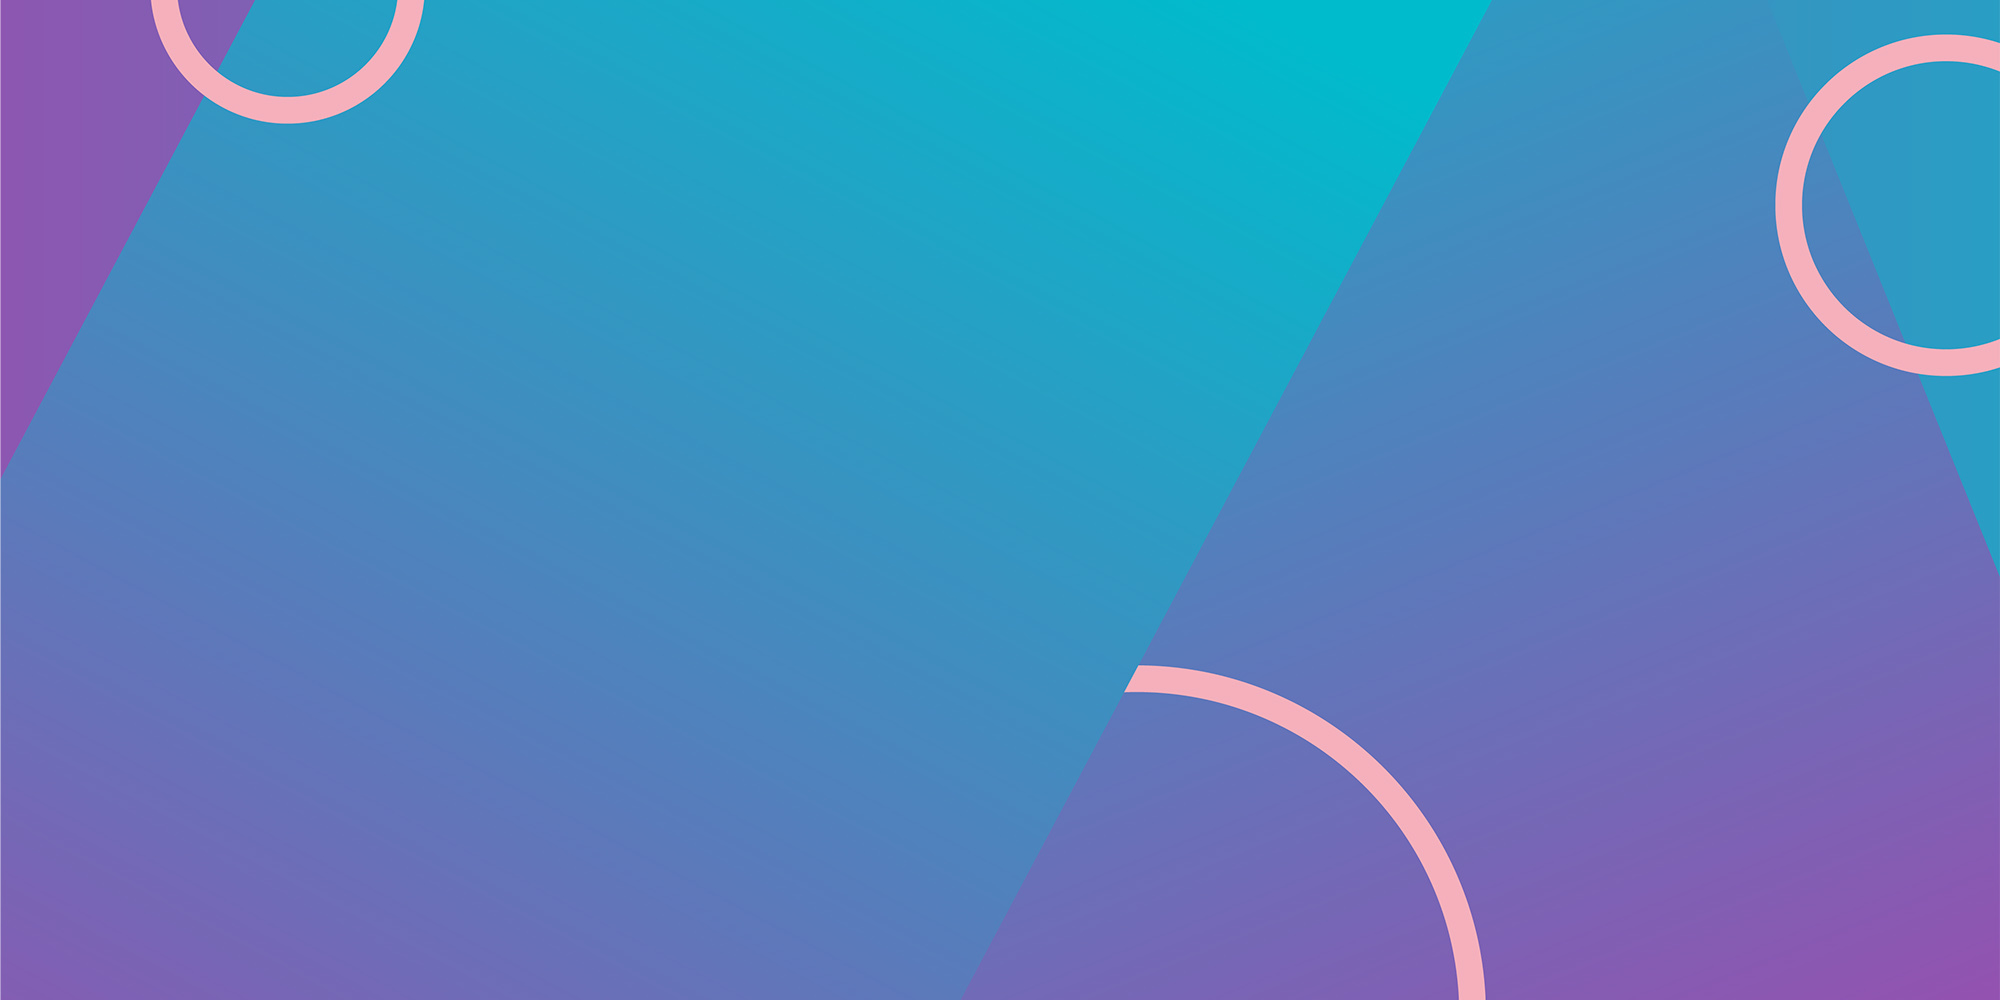 alumni-gradient-background